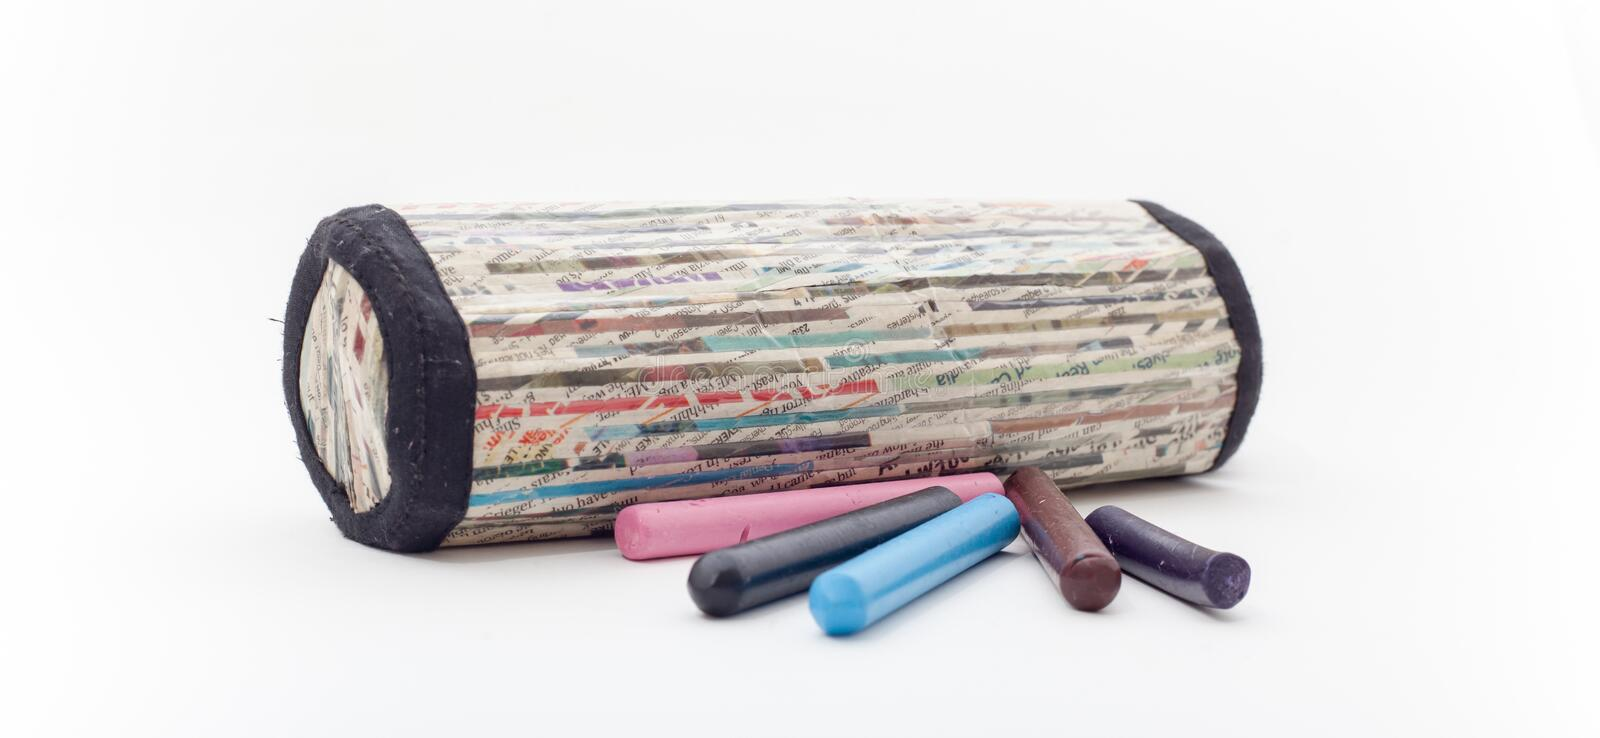 Pencil Box on the wite background, Pencil box isolated. Pencil Box on the wite background royalty free stock photography